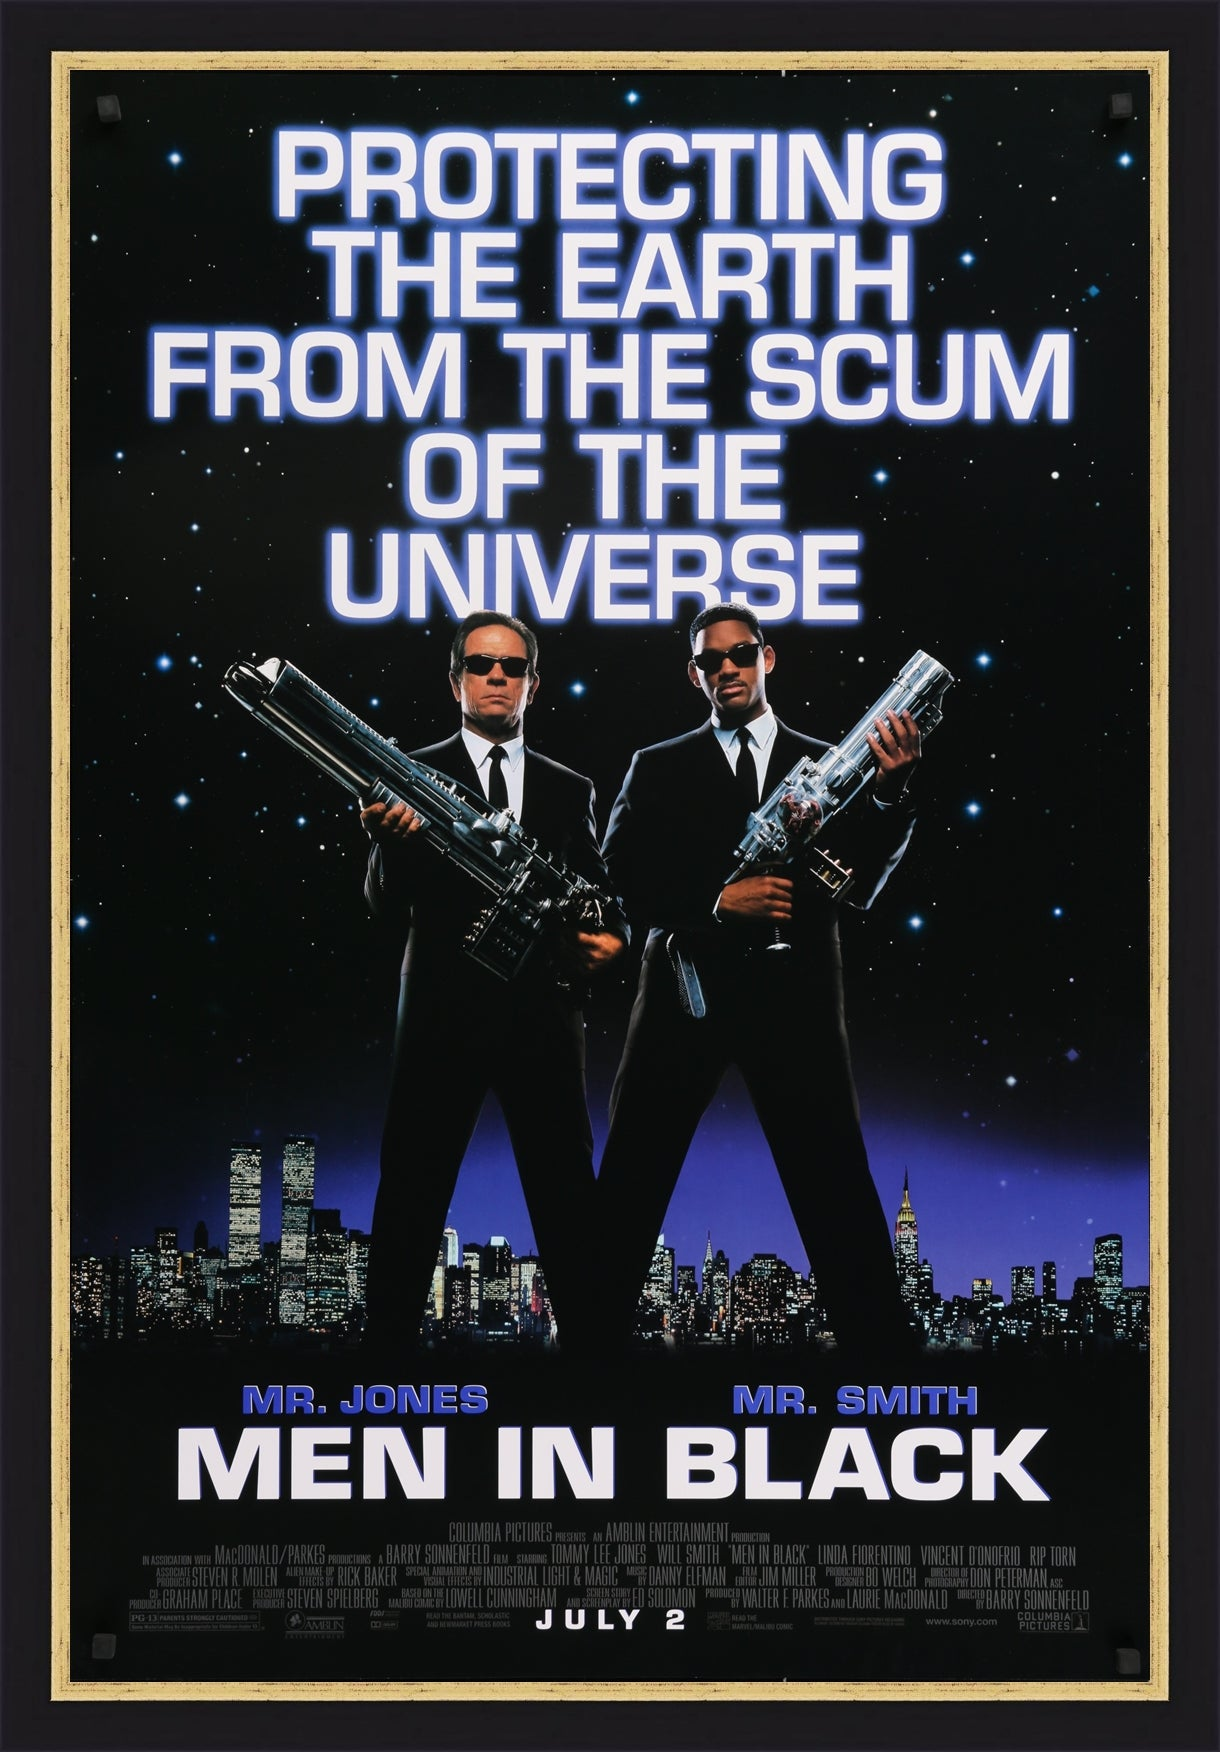 An original movie poster for the 1997 film Men In Black